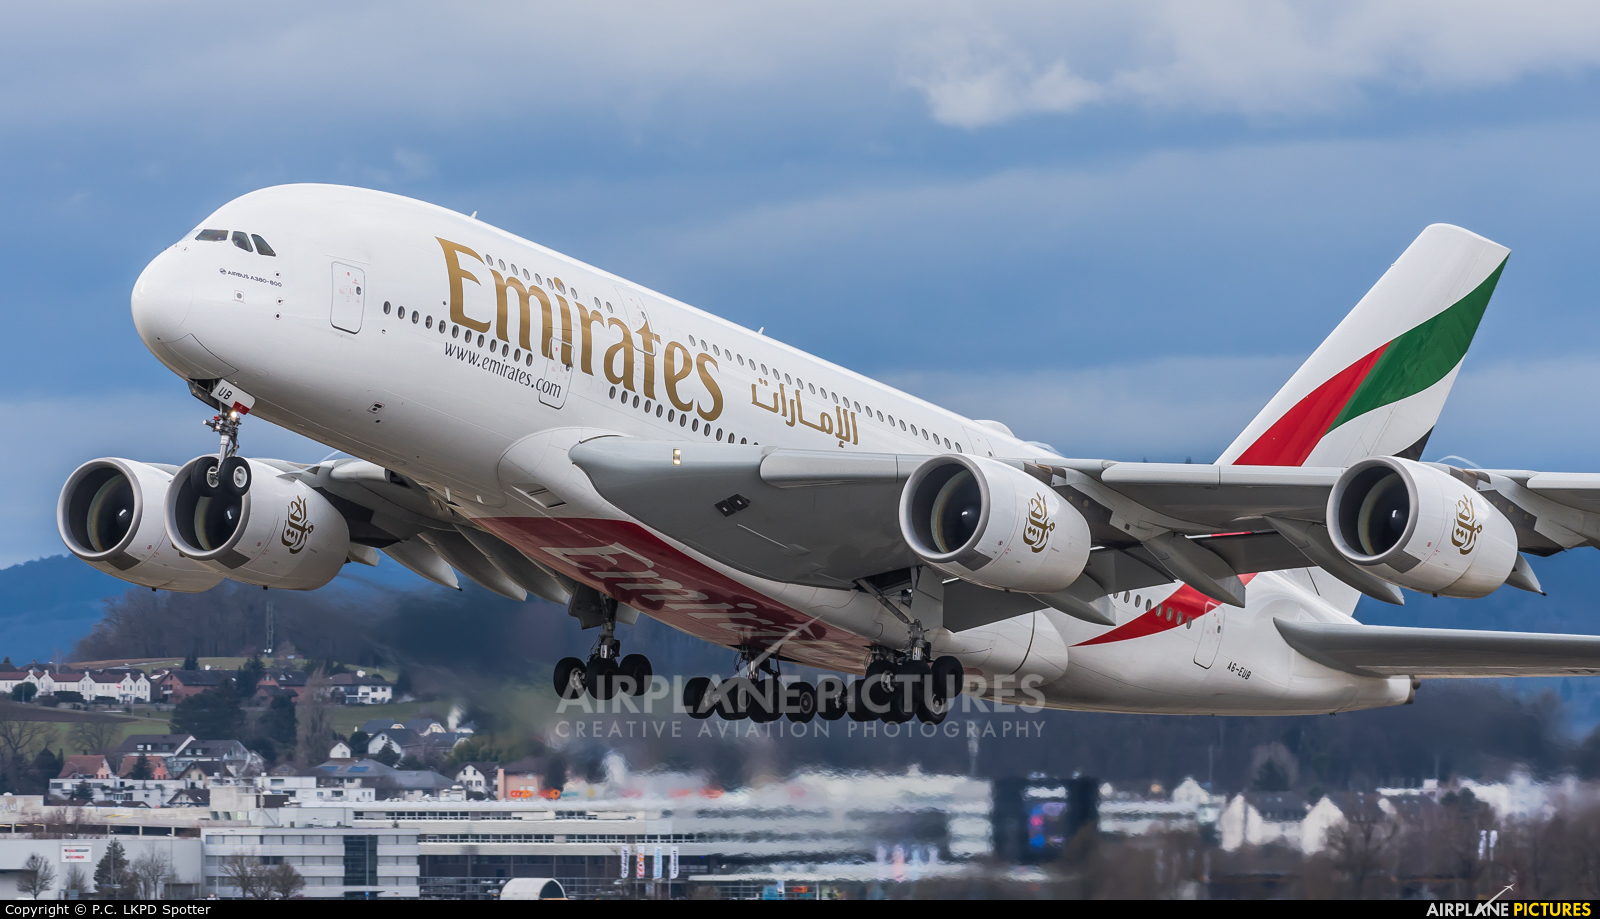 Emirates Airlines A6-EUB aircraft at Zurich